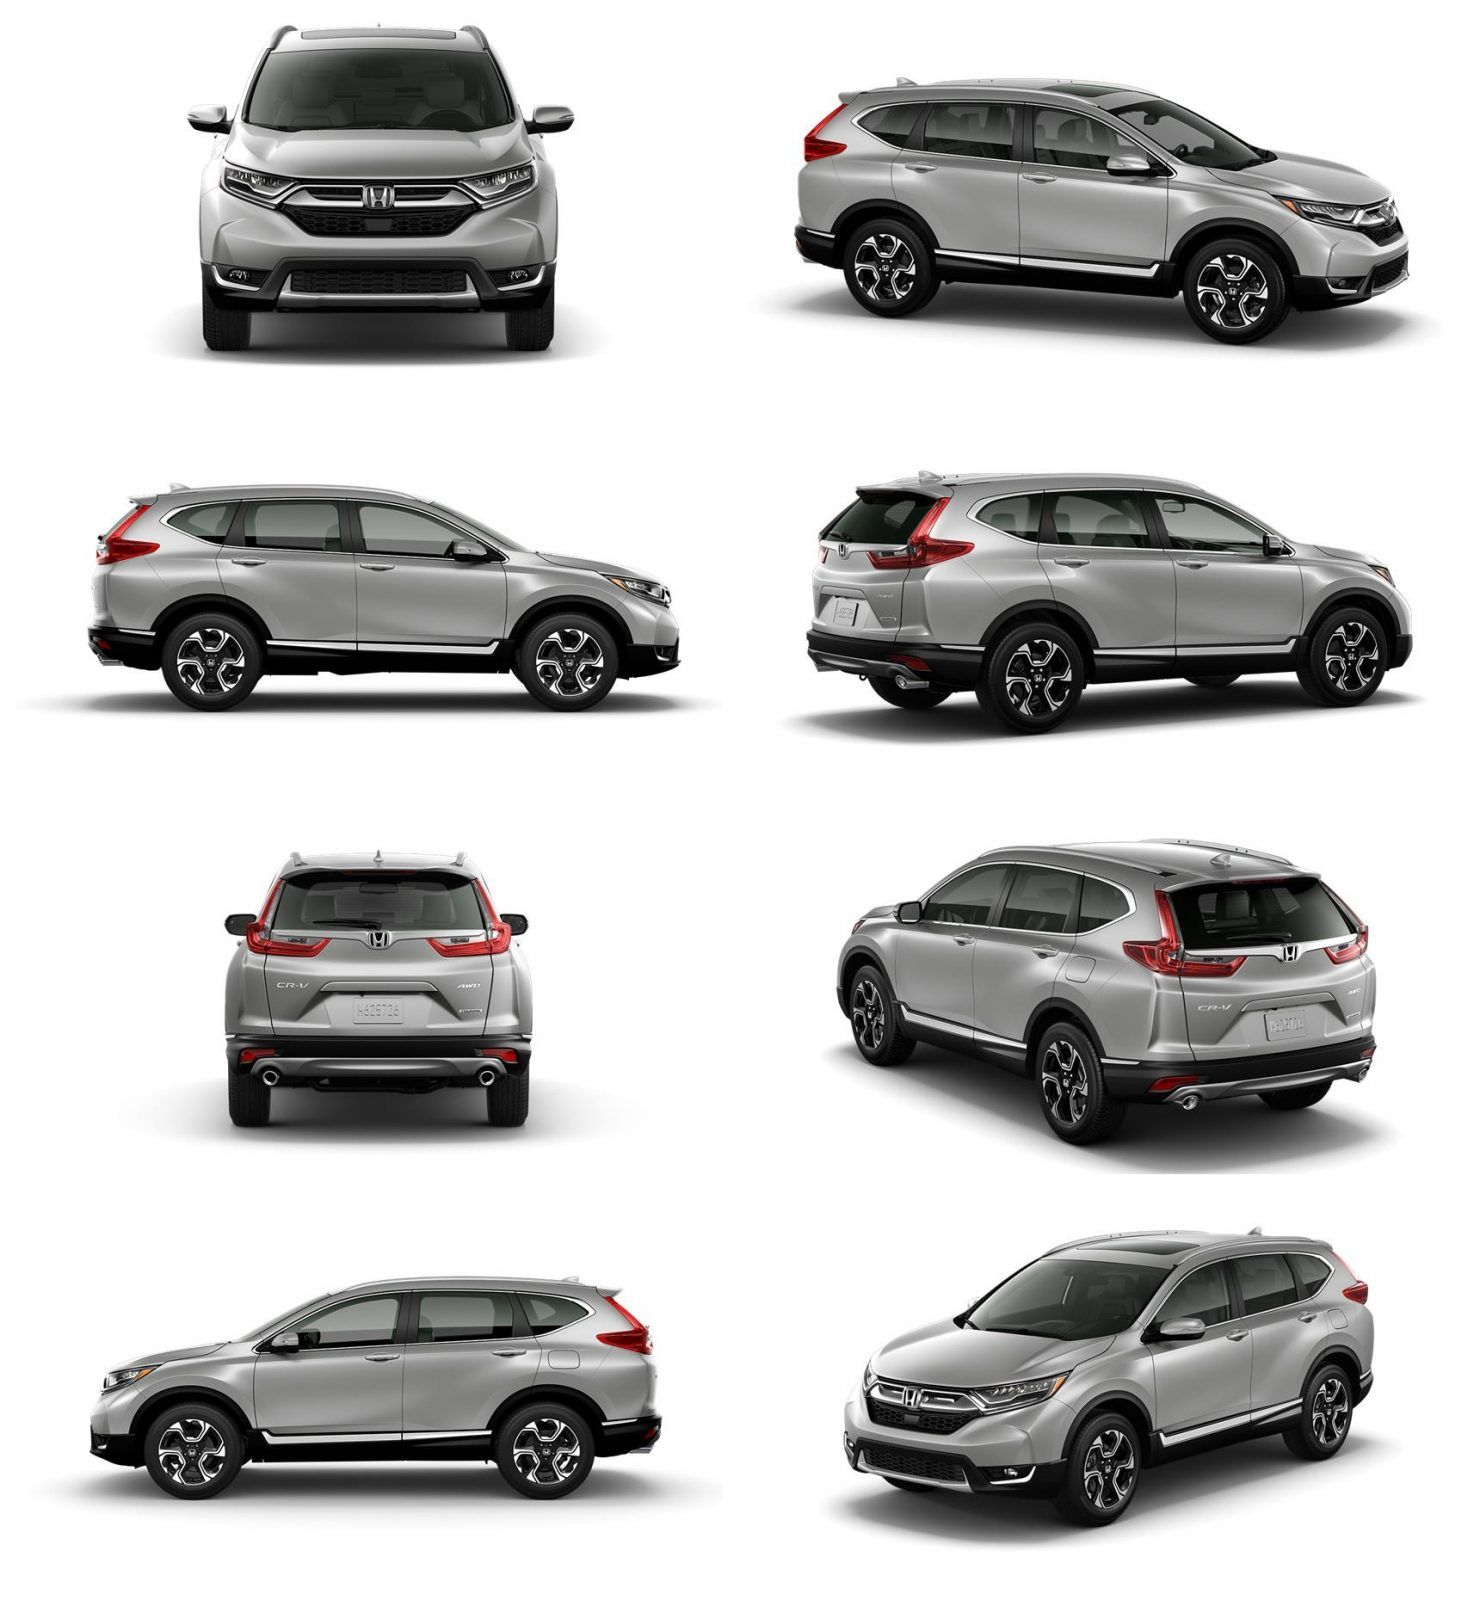 2019 Honda Cr V Visualizer All 10 Colors Animated Gifs Car Shopping Honda Cr Honda Cr V